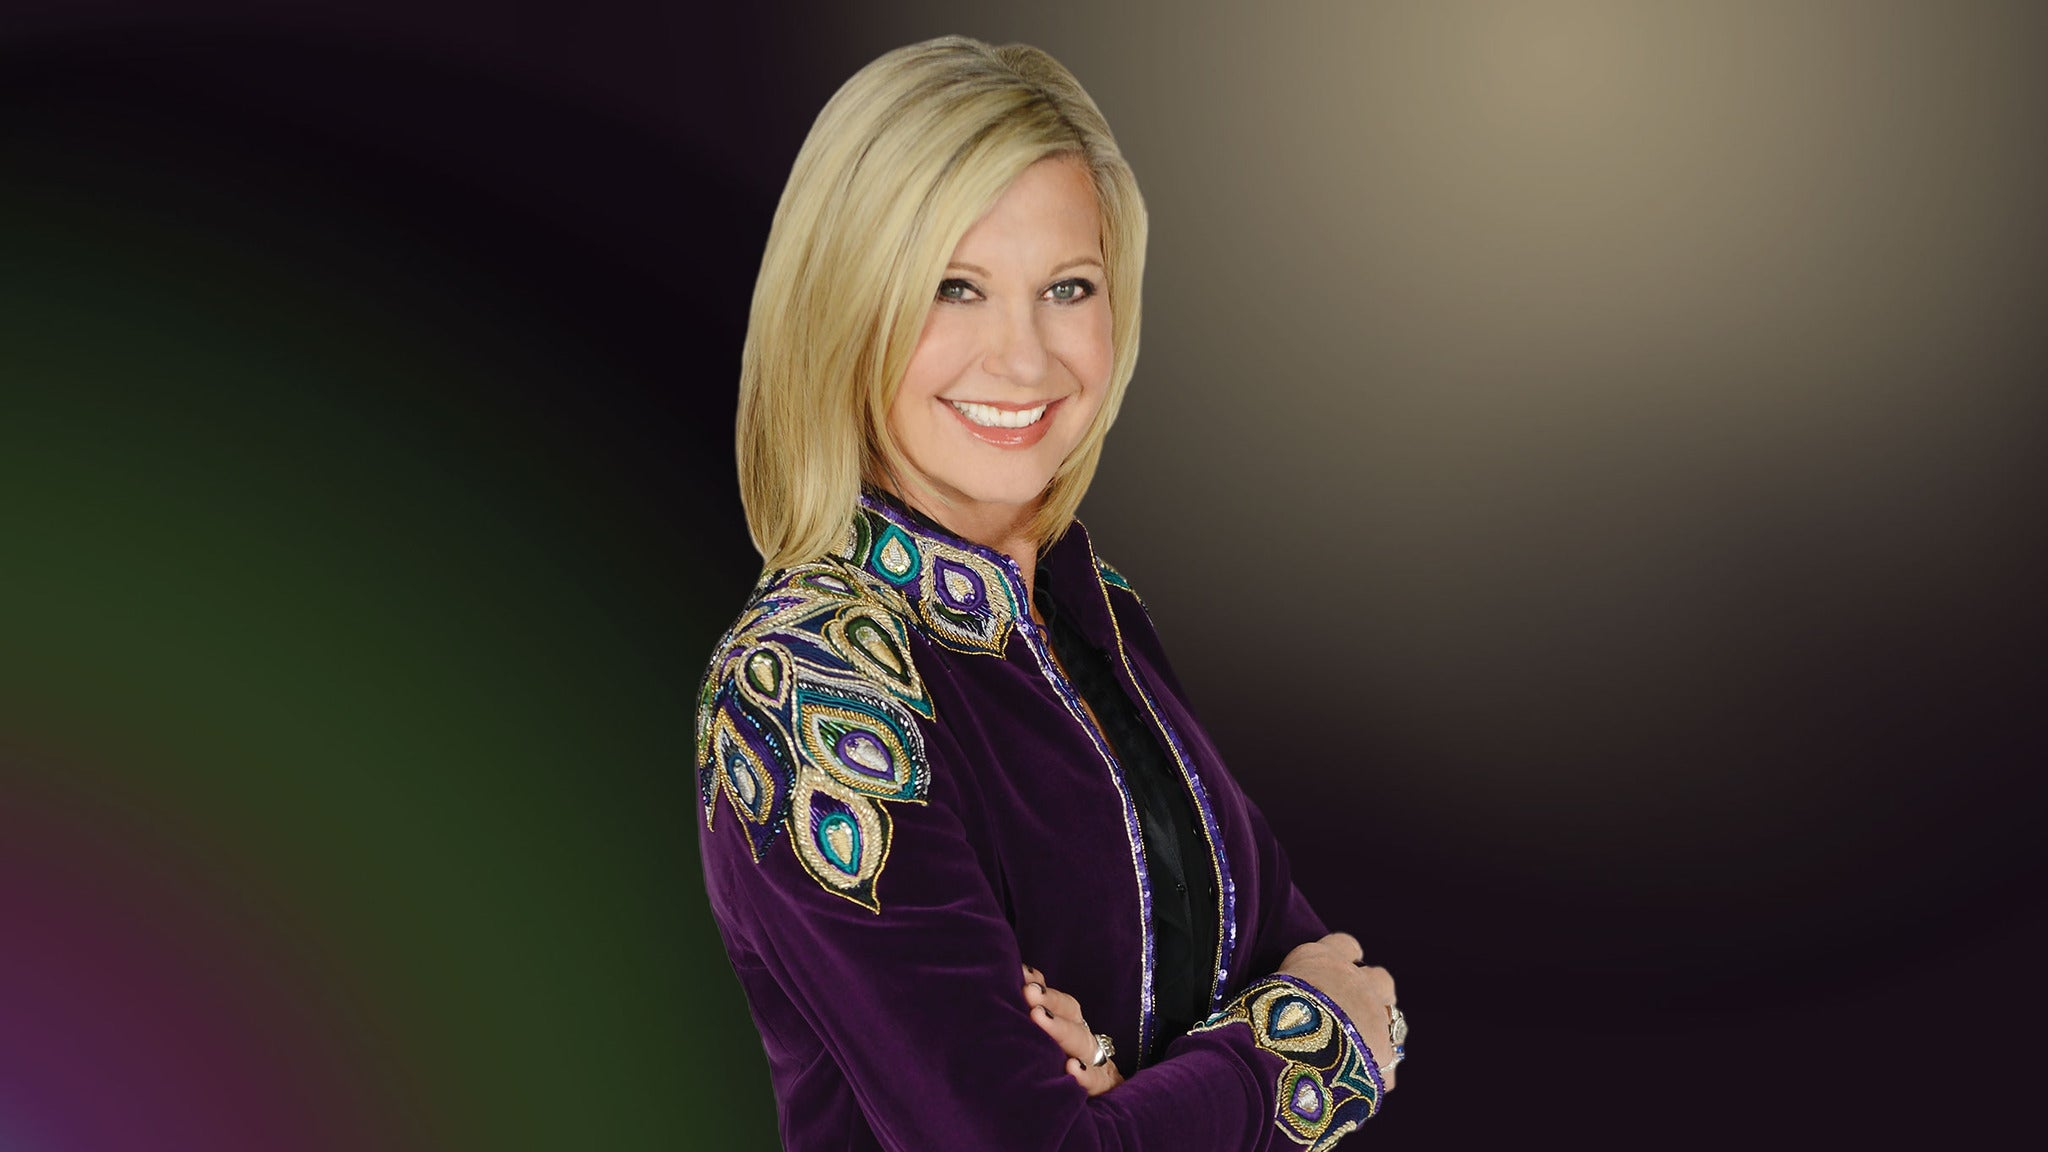 Olivia Newton-John at Talking Stick Resort